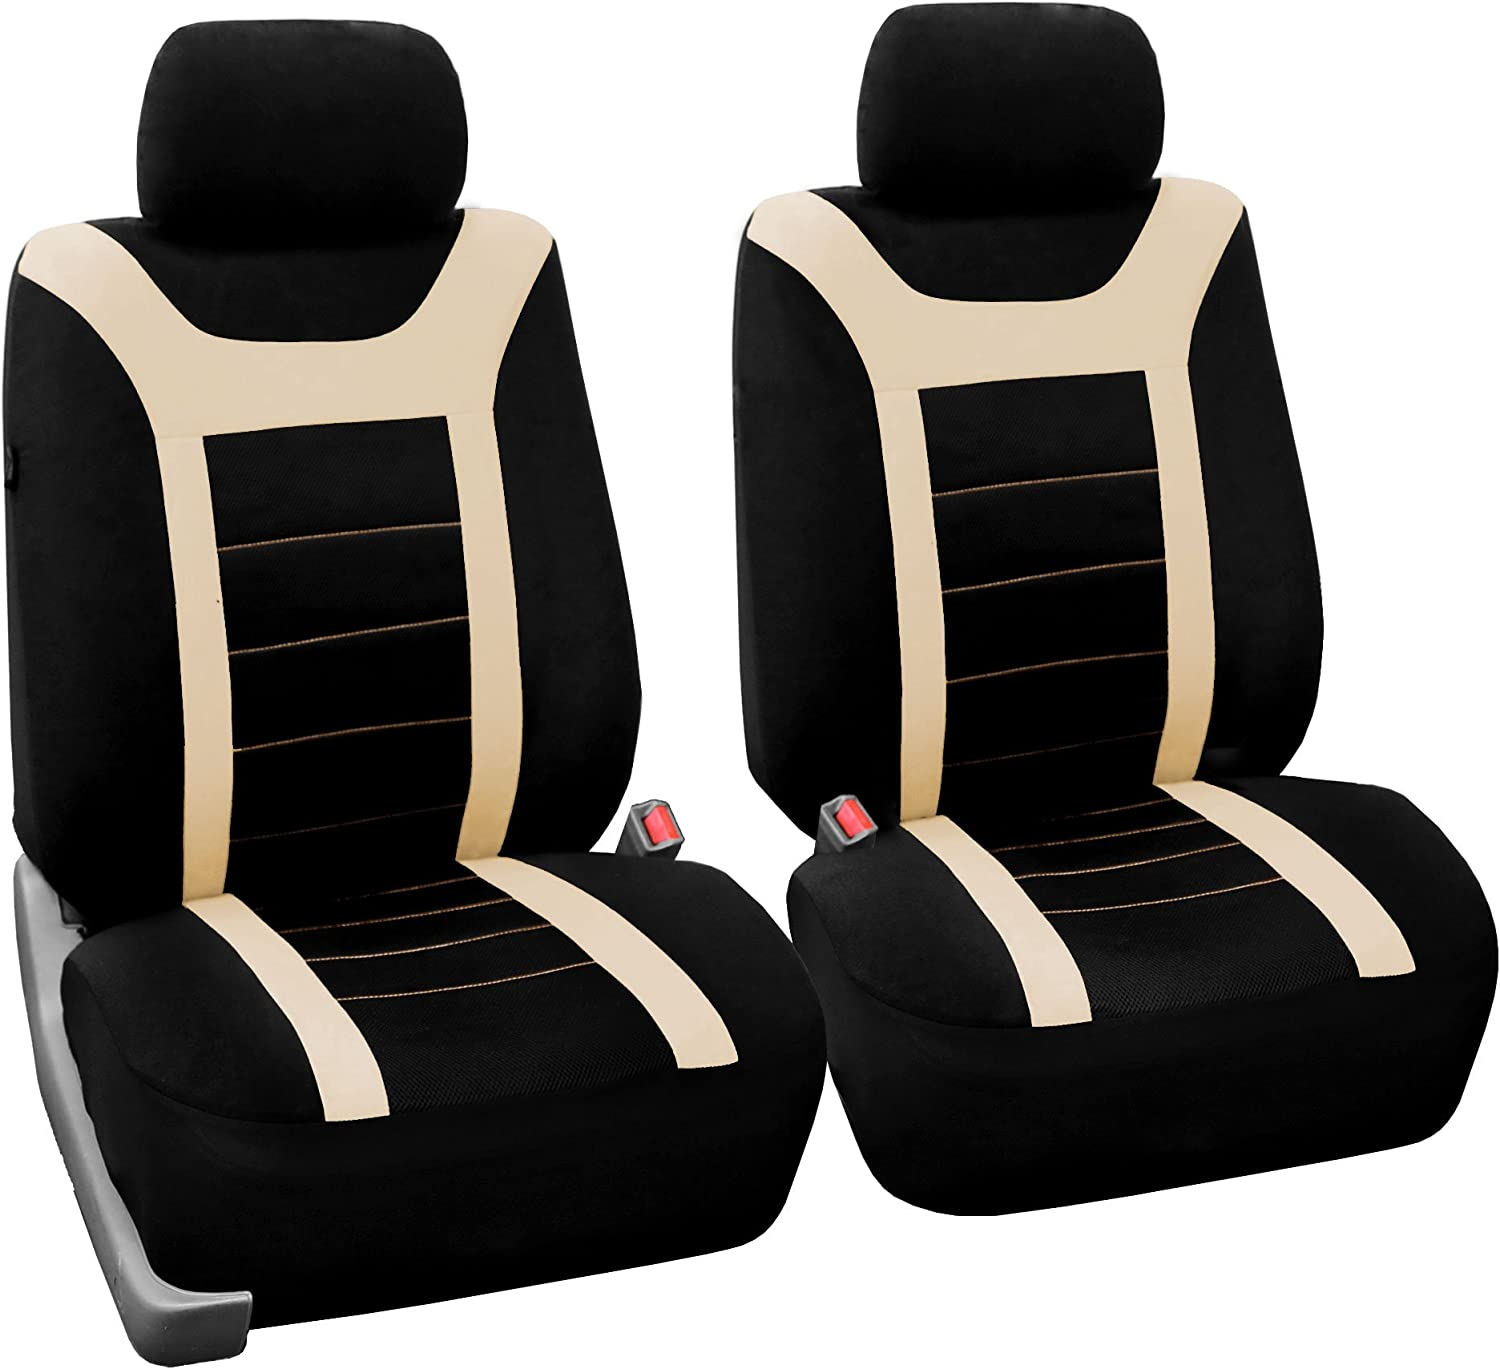 or Van Black FH GROUP FH-FB070013 Sports Bench Seat Cover -Rear Split Bench Truck SUV Fit Most Car